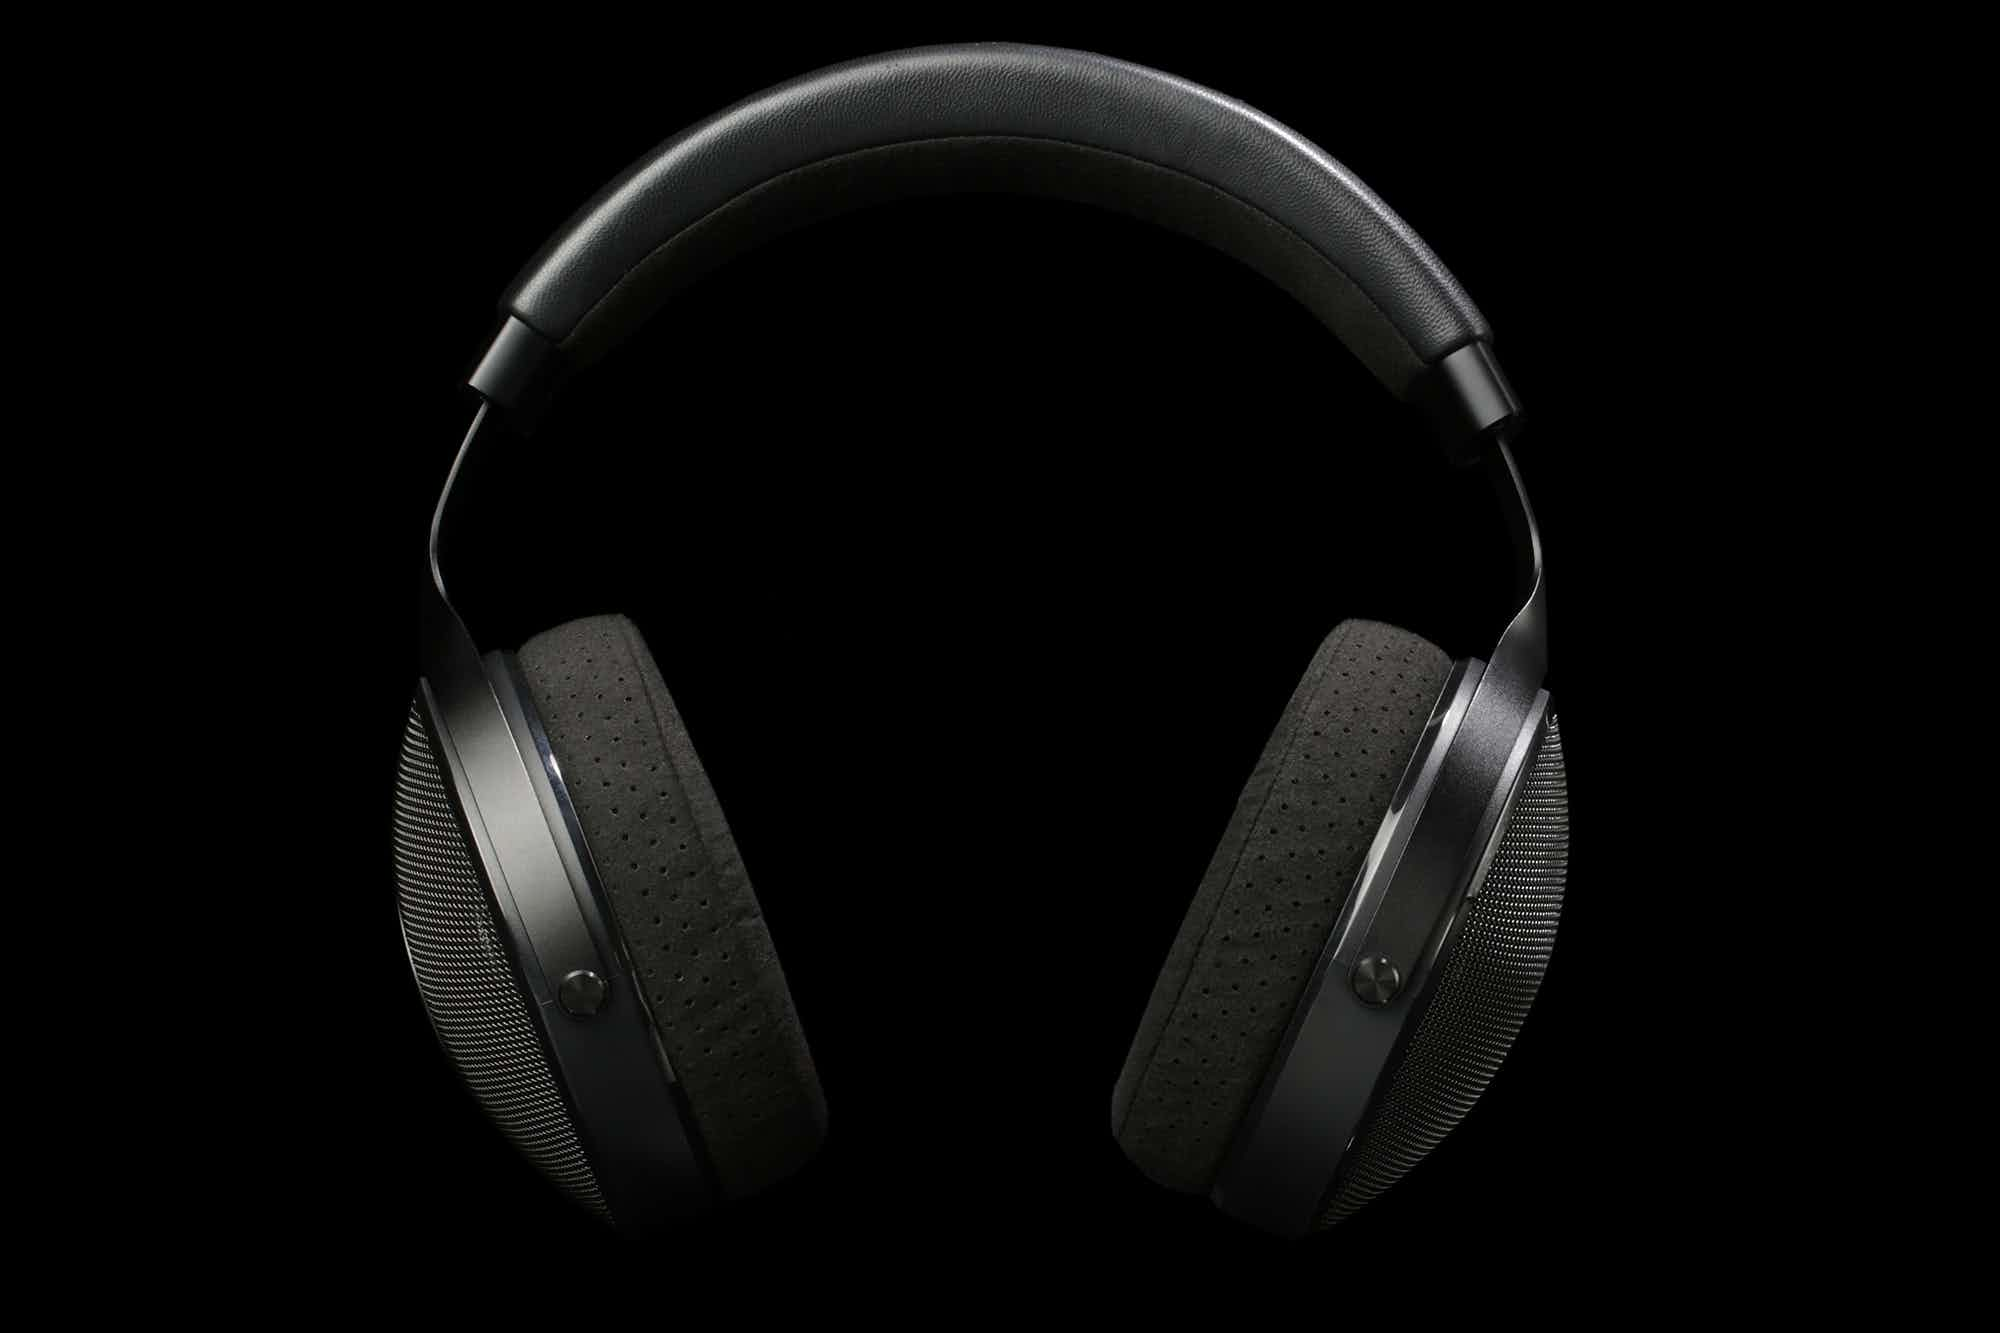 d3c62d021f0 Massdrop Focal Elex | Headphone Reviews and Discussion - Head-Fi.org